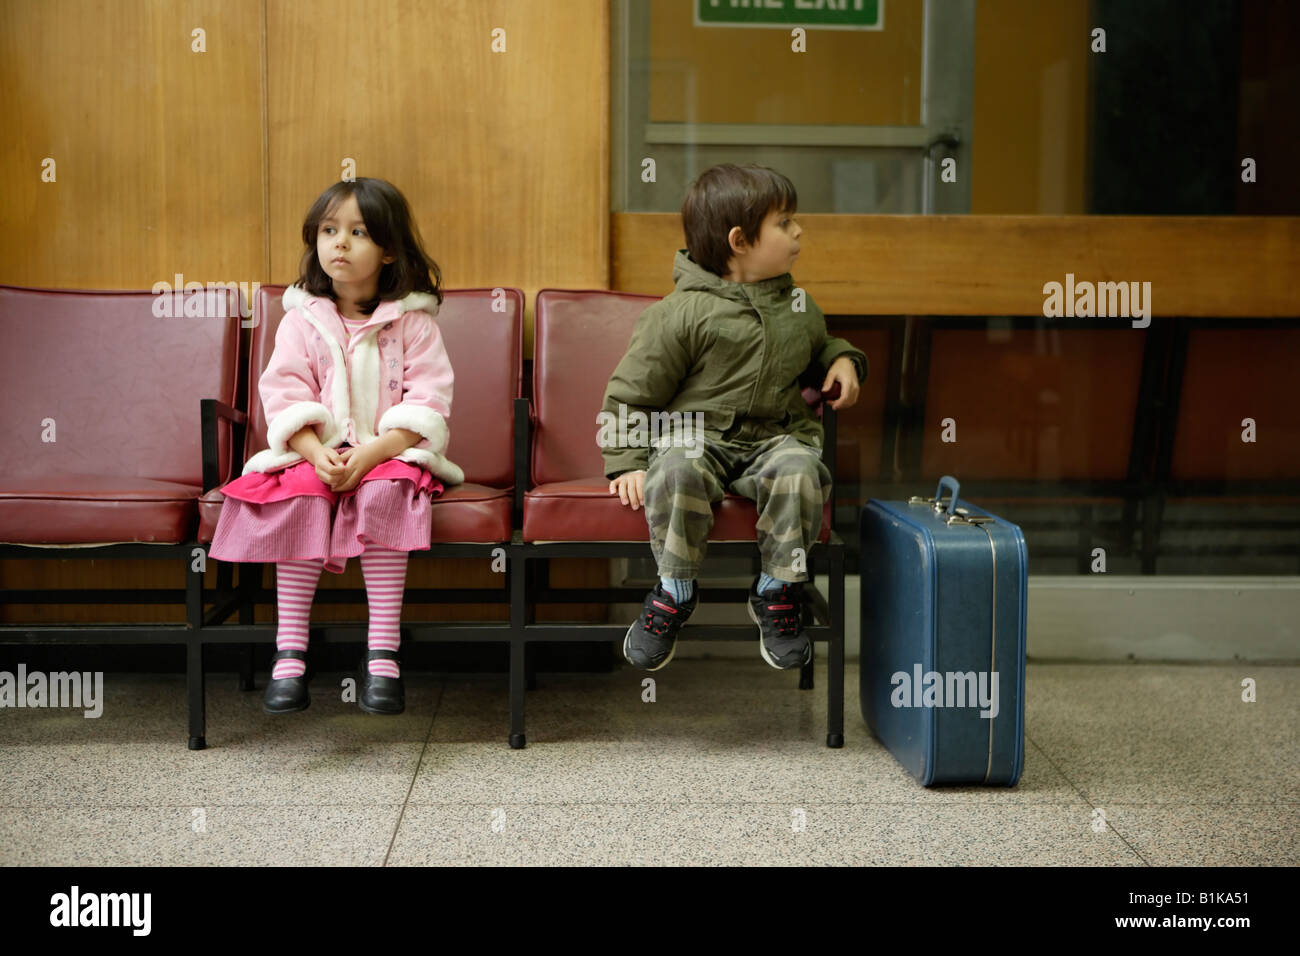 brother and sister in railway station waiting room boy aged six aged four